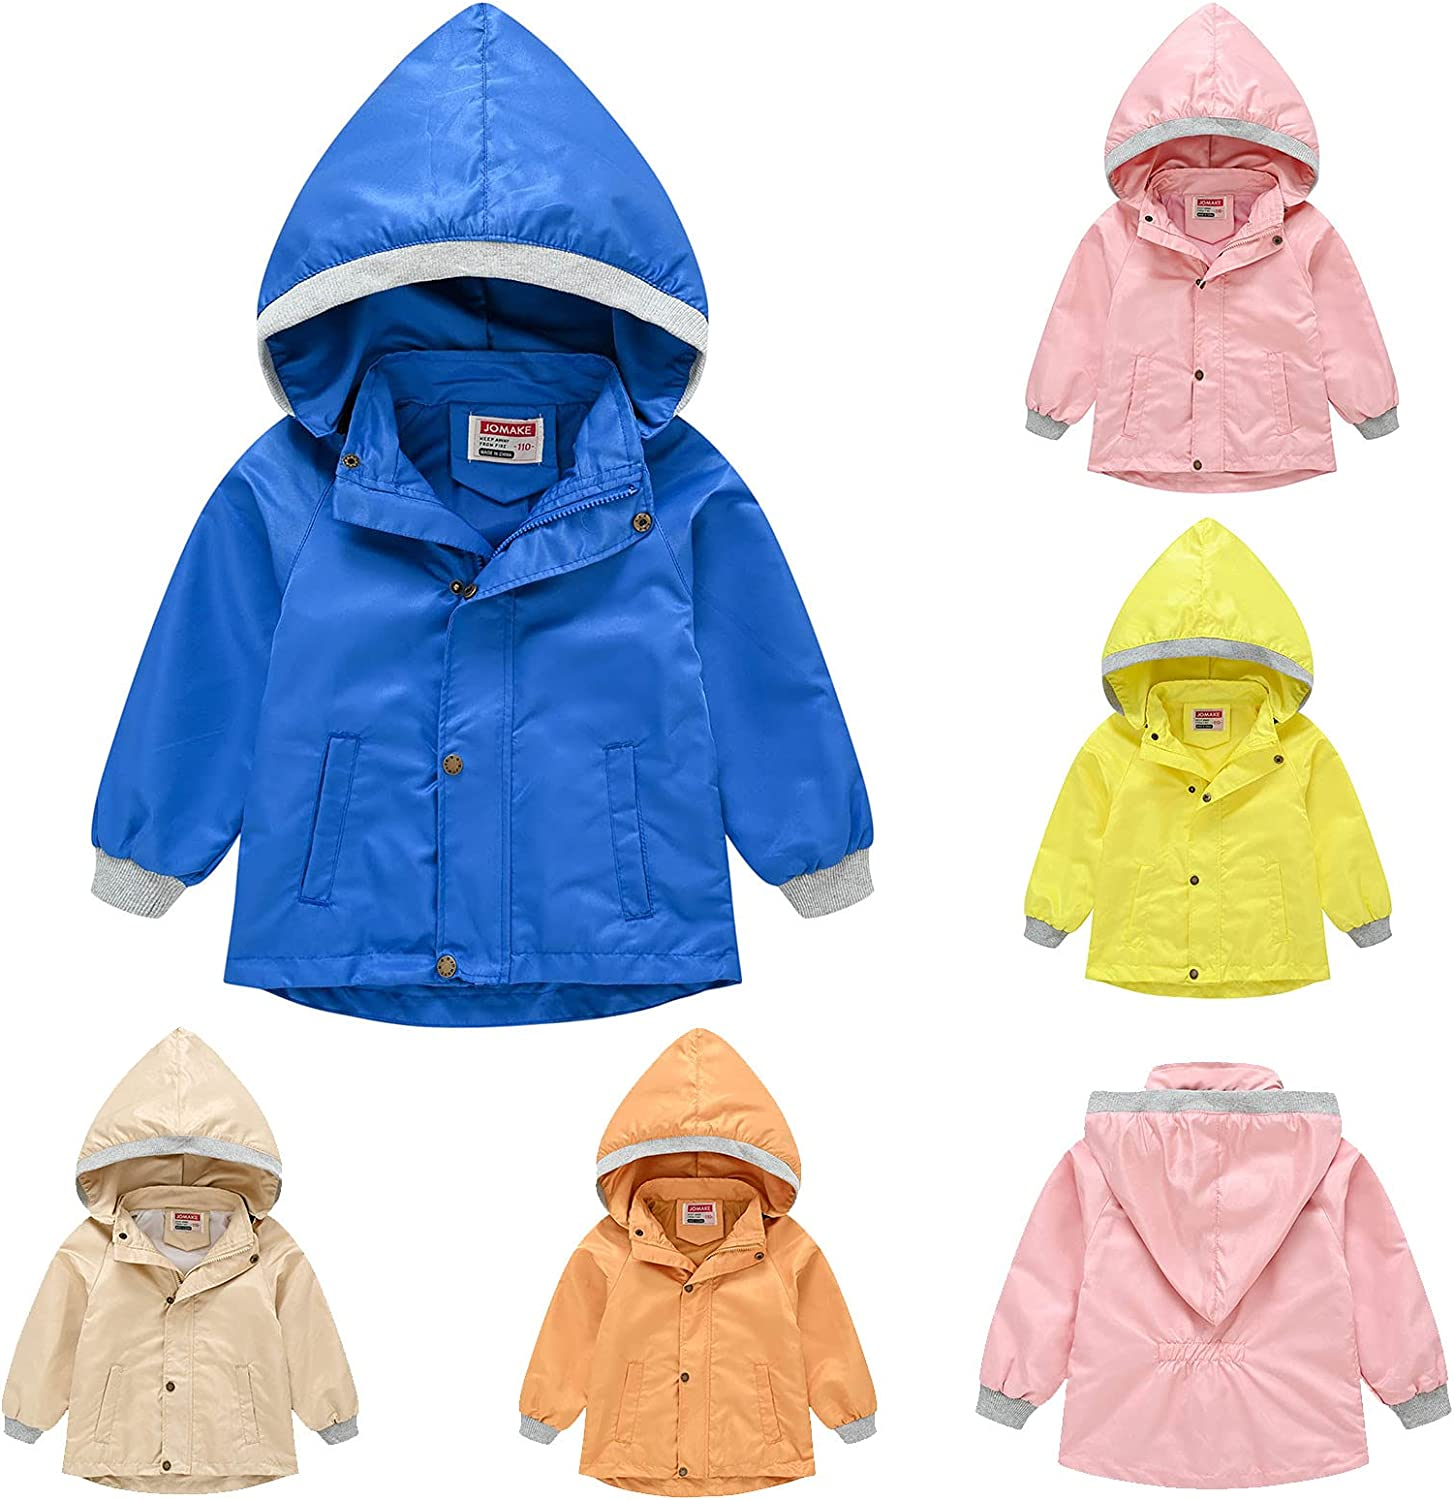 Children Windbreaker Baby Many popular brands Boys Girls Hooded Jacket Pure Sp Max 43% OFF Color